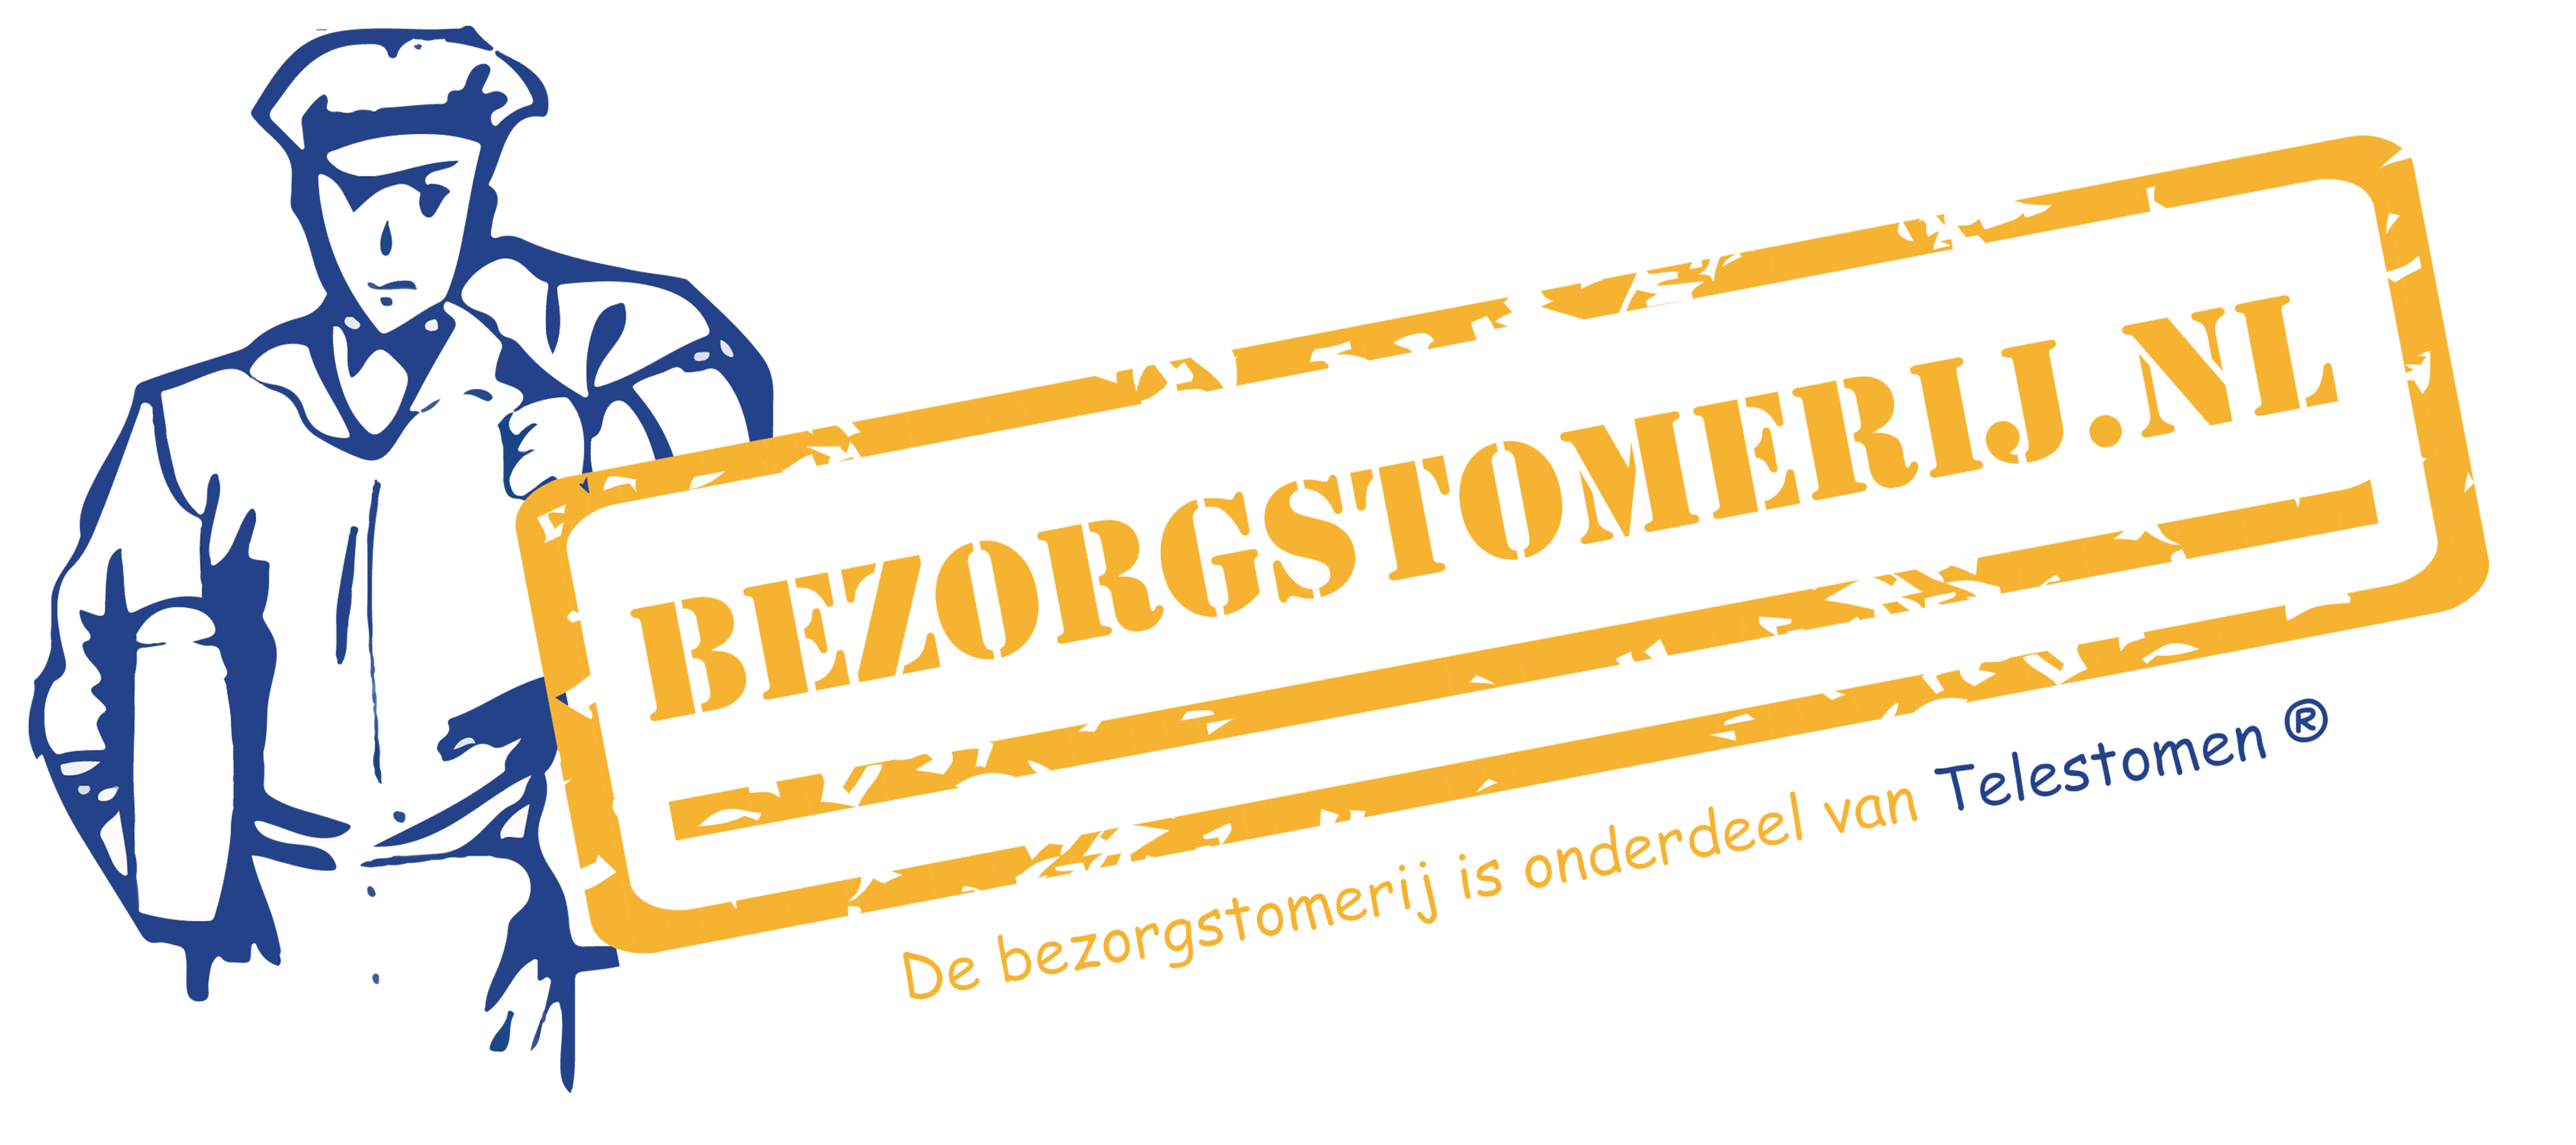 De Bezorgstomerij